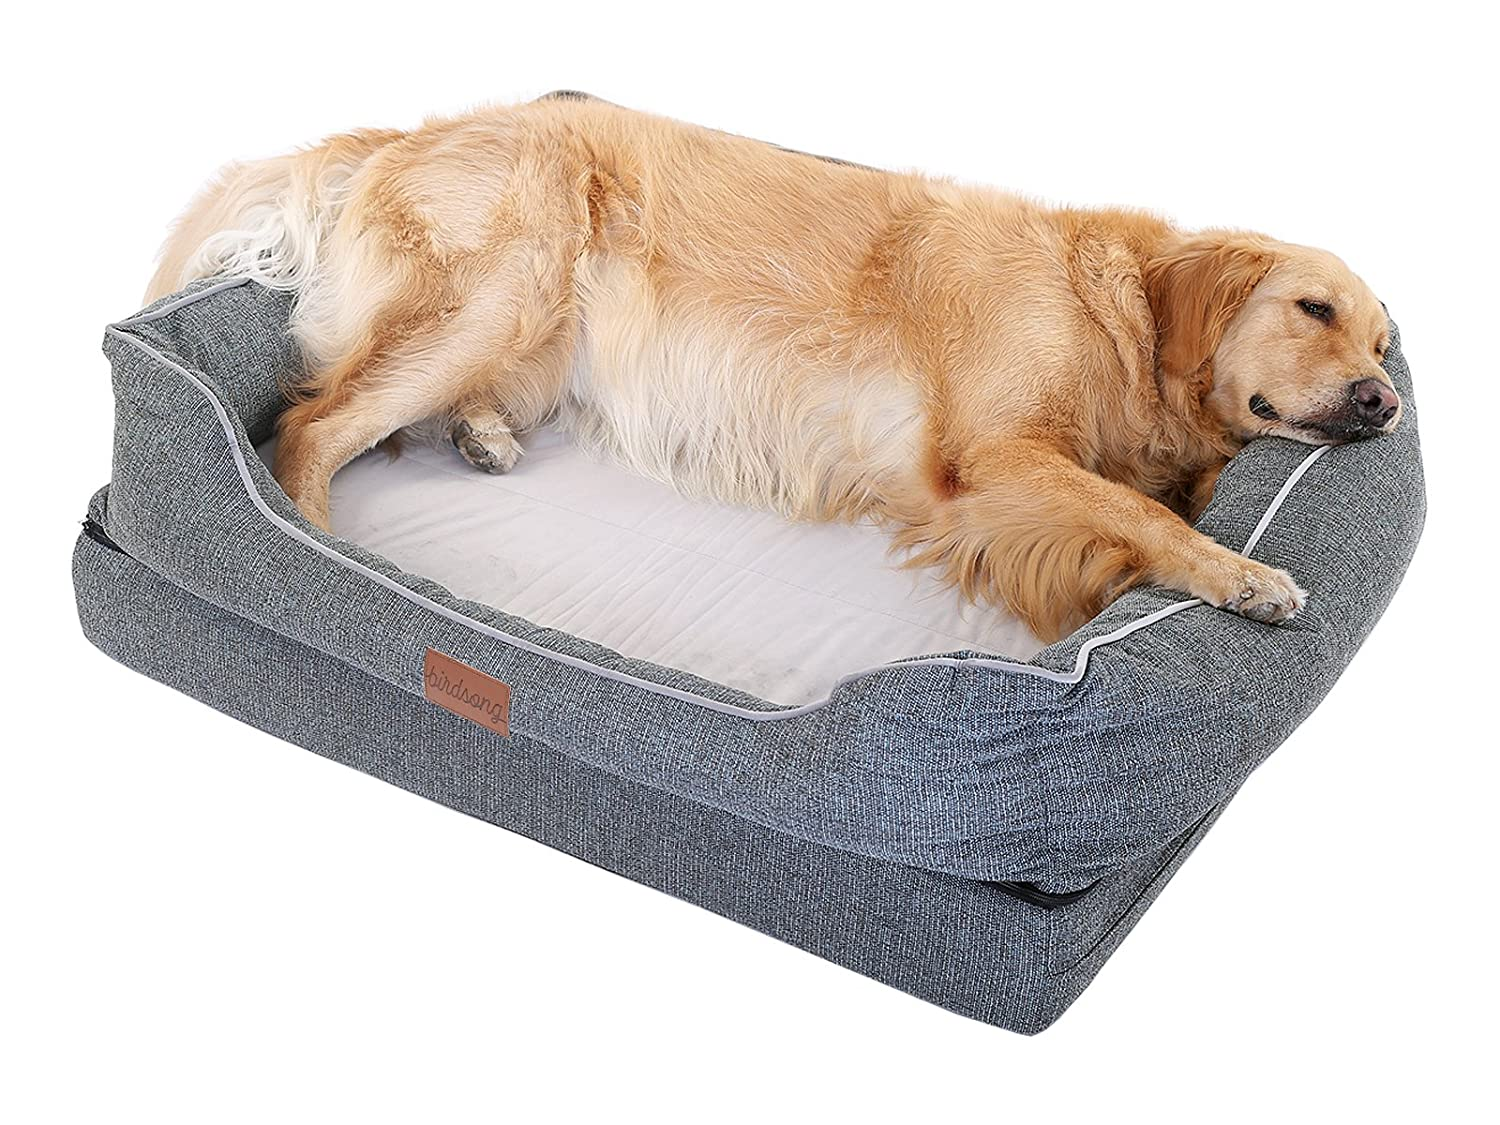 Extra Large PLS Birdsong Fusion Orthopedic Dog Bed with Plush Bolster Sides, Extra Large, Firm Foam Dog Bed, Dog Beds for Large Dogs with Removable Cover